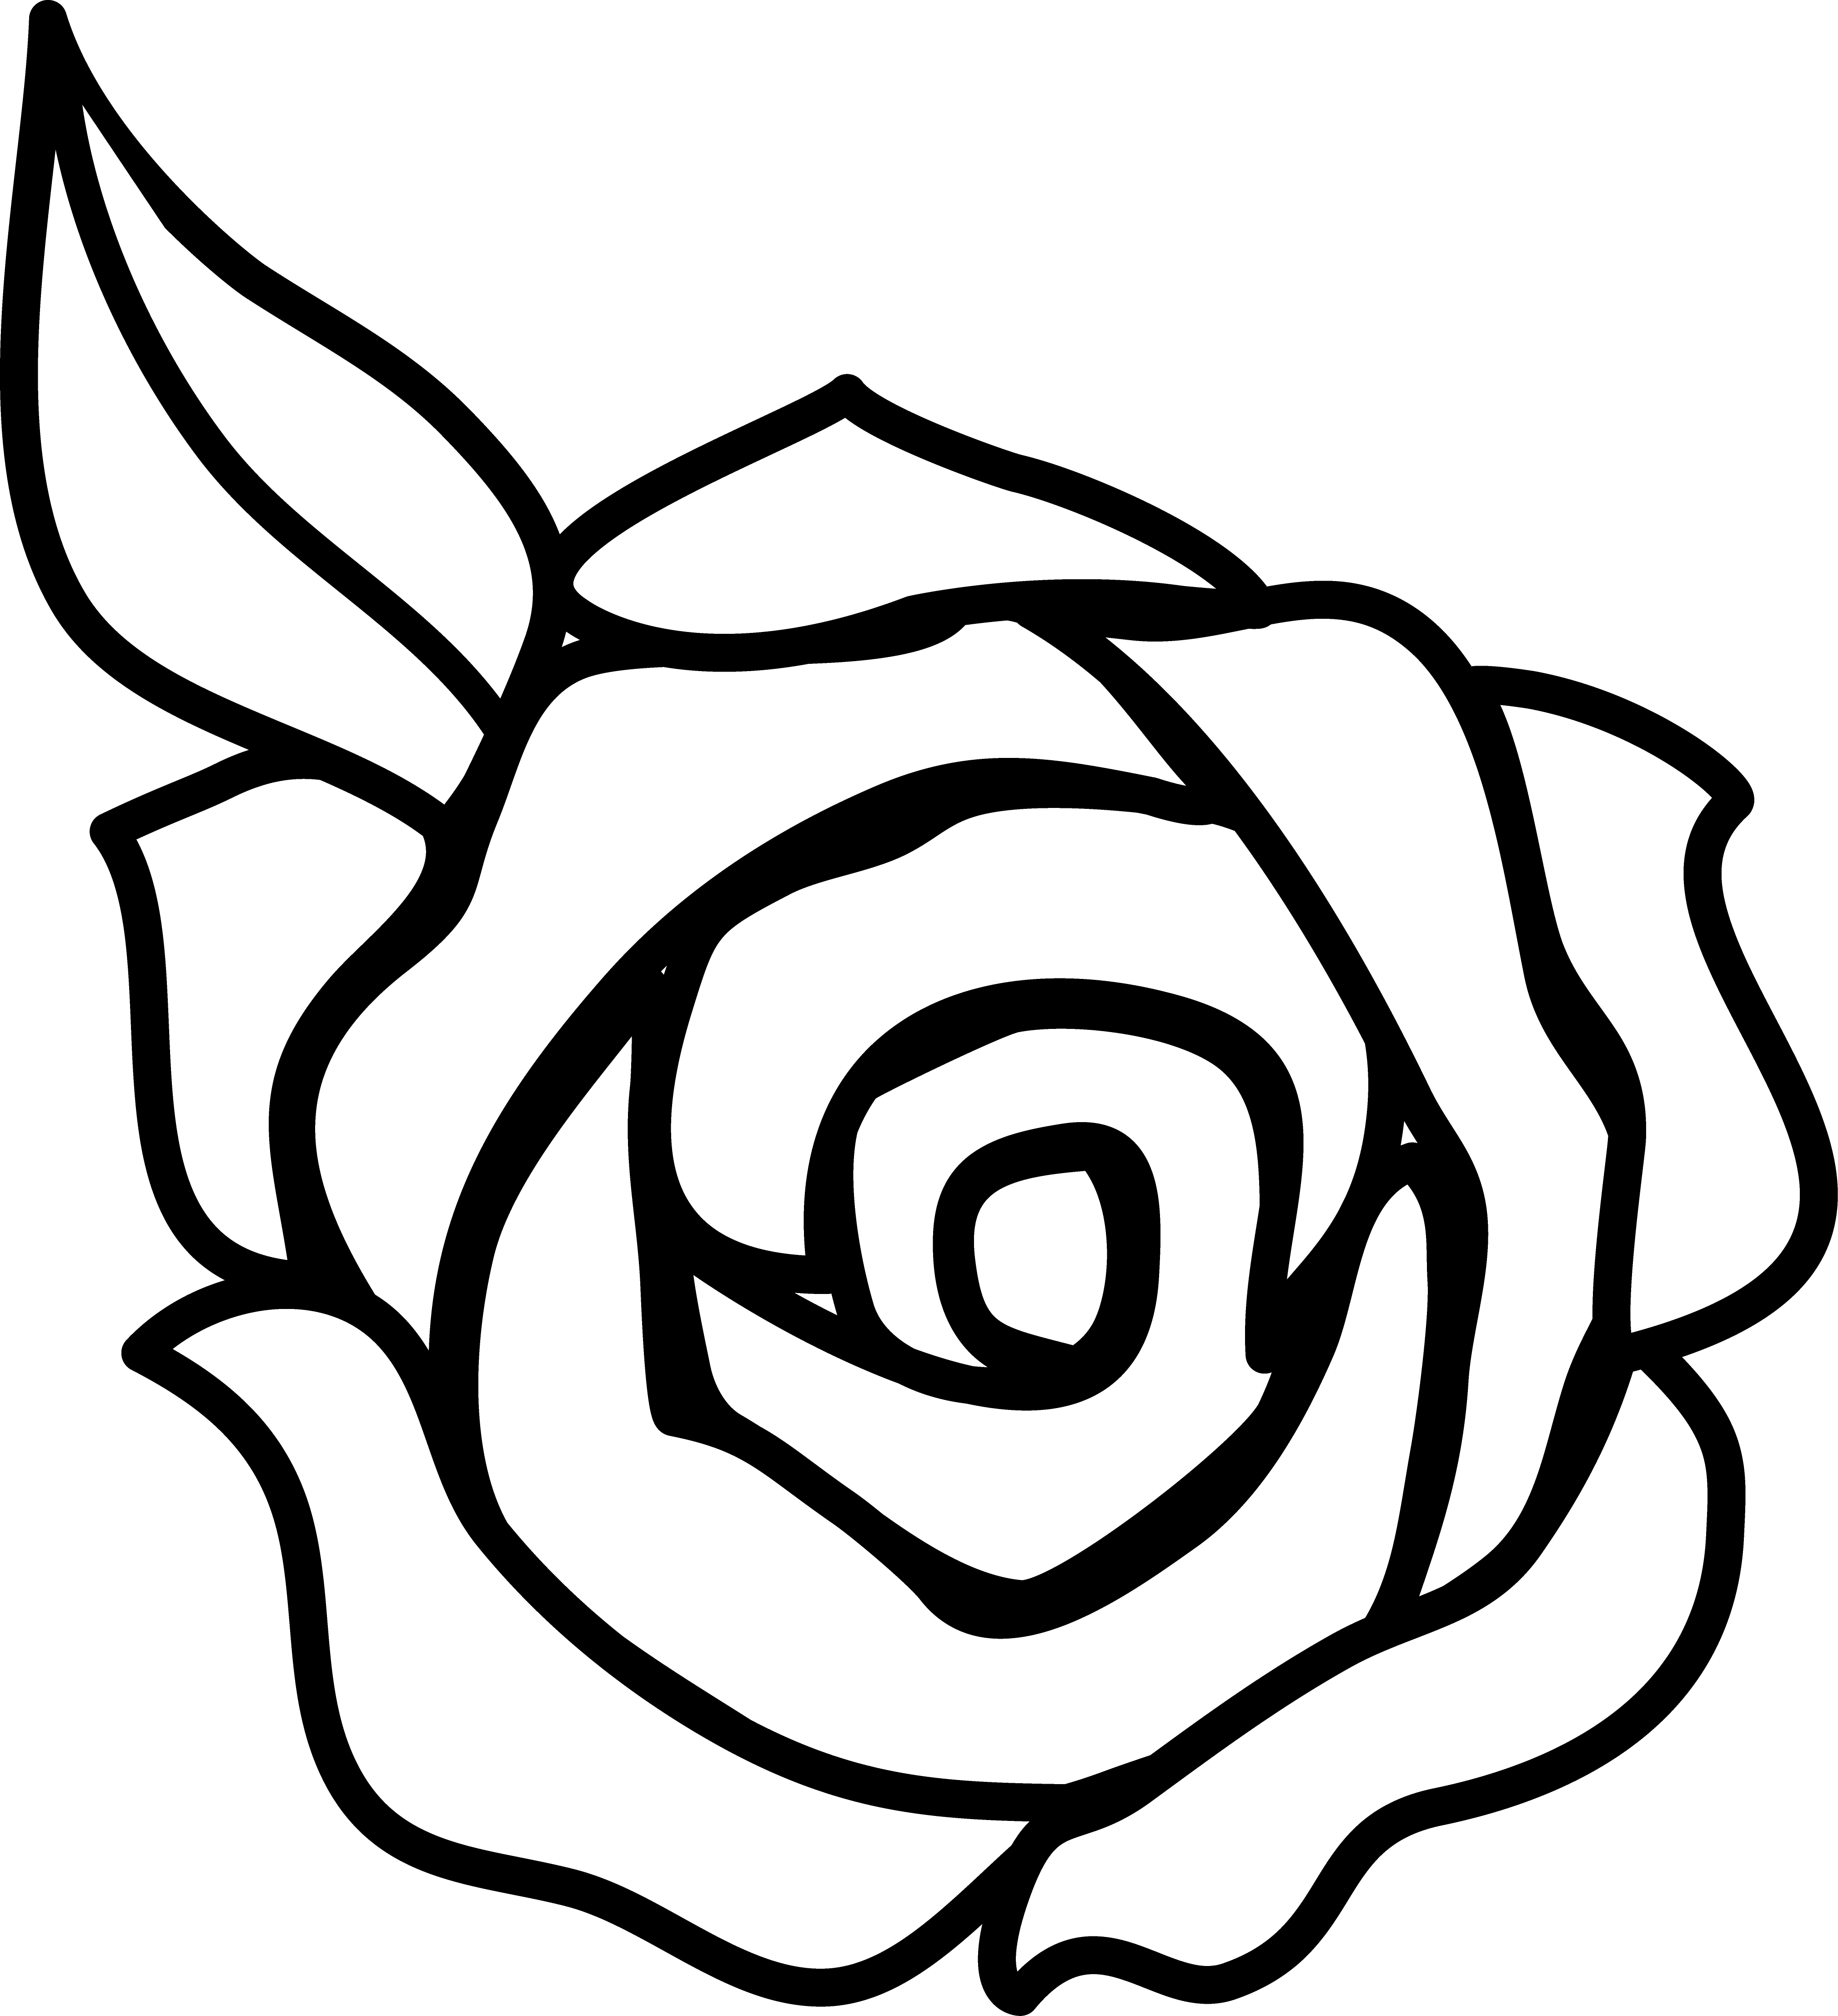 rose pictures to trace attractive rose drawings design trends rose to pictures trace